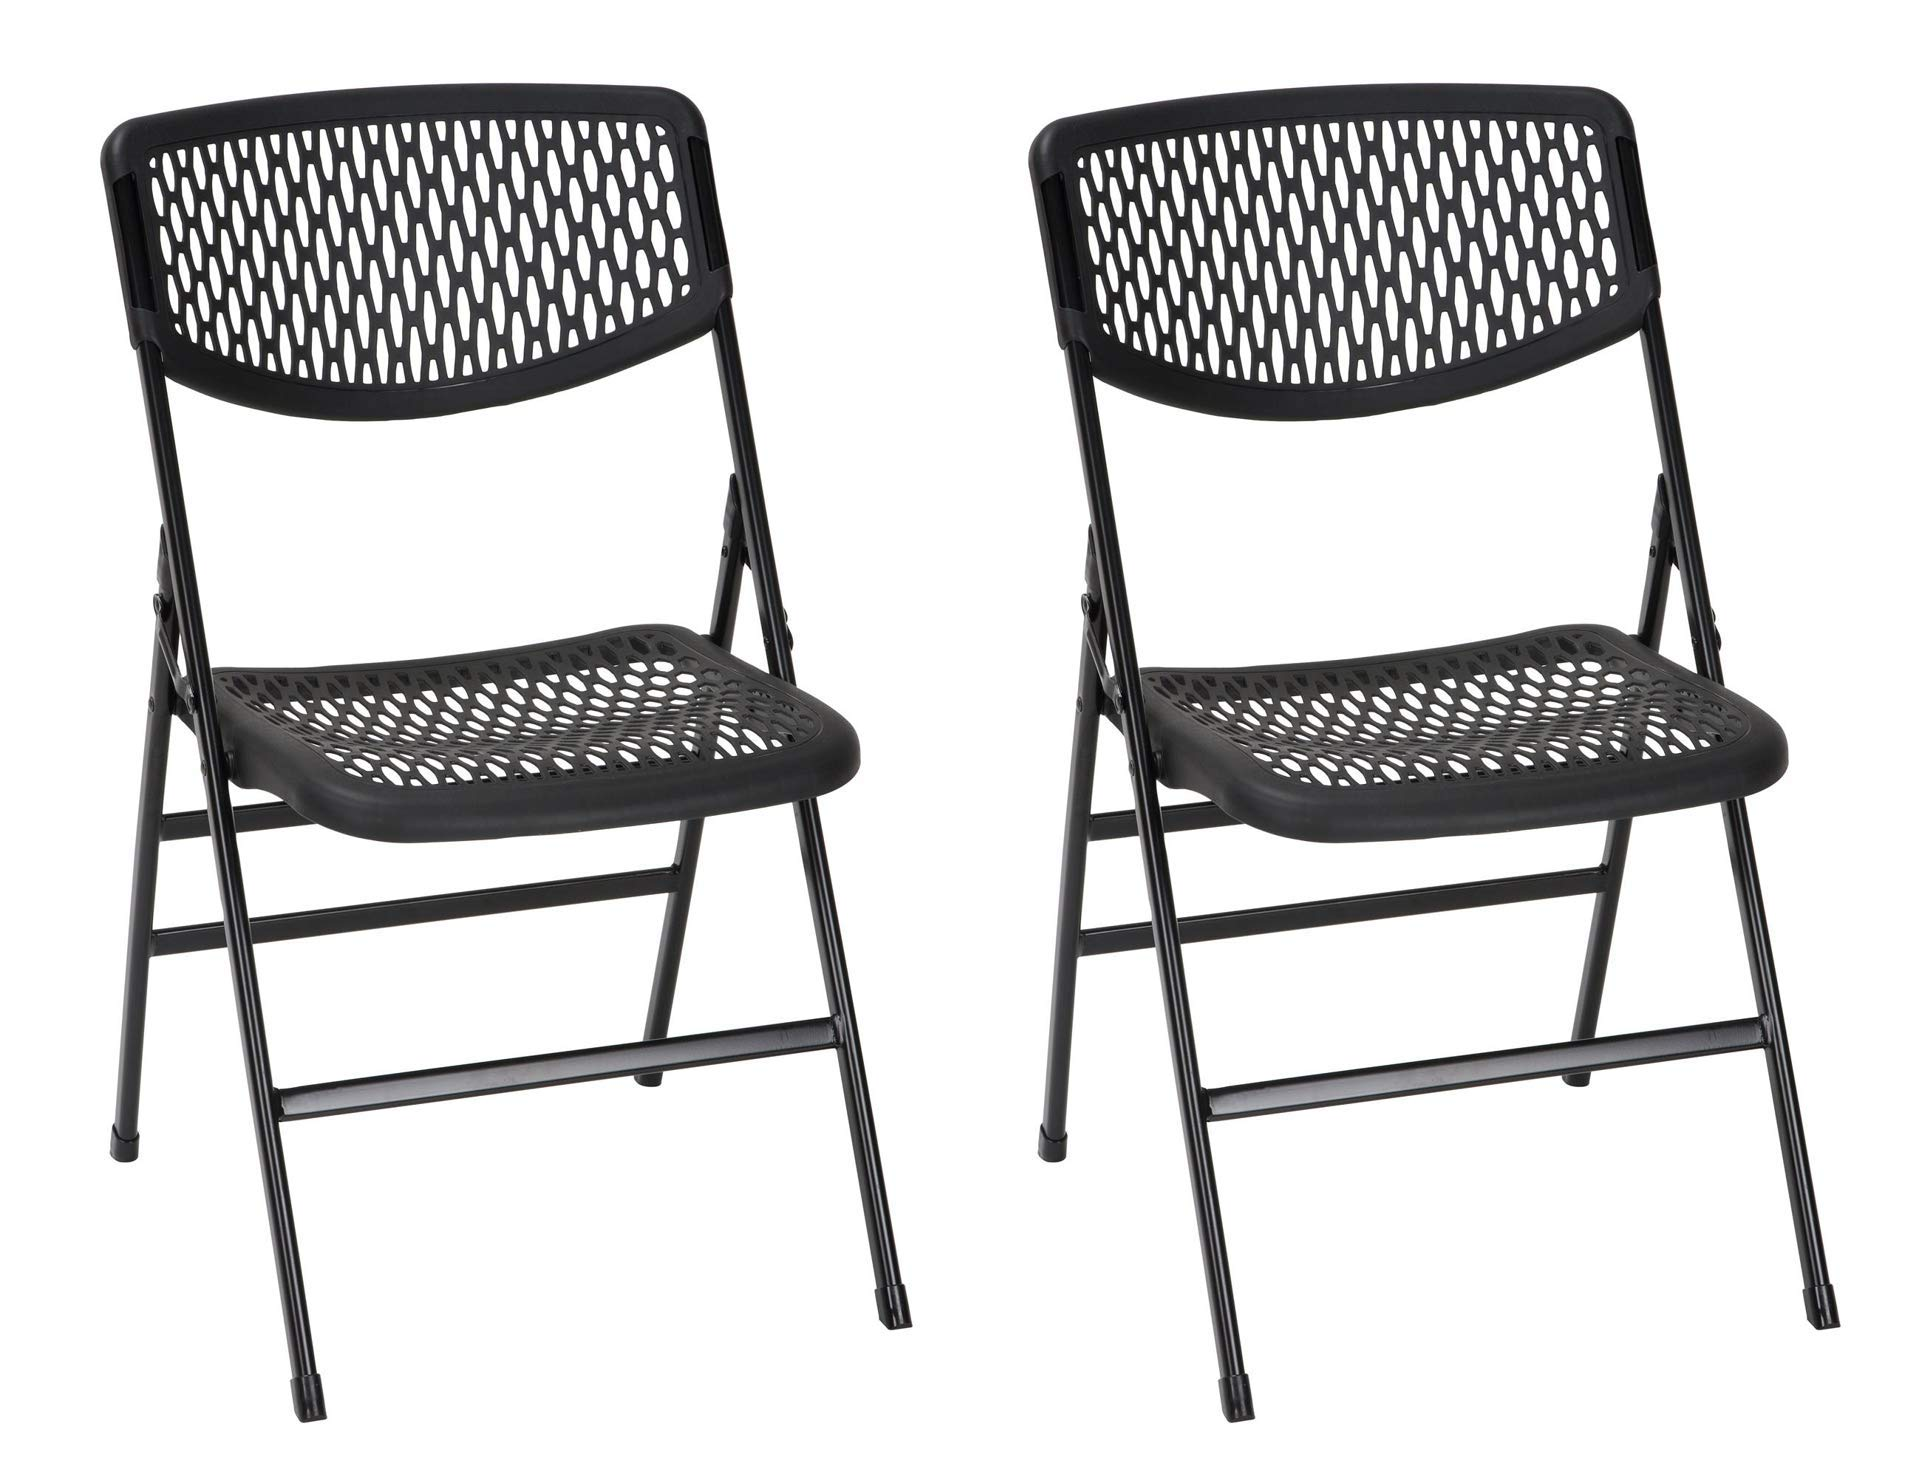 COSCO Commercial Resin Mesh, Black, 2-Pack Folding Chairs, by Cosco